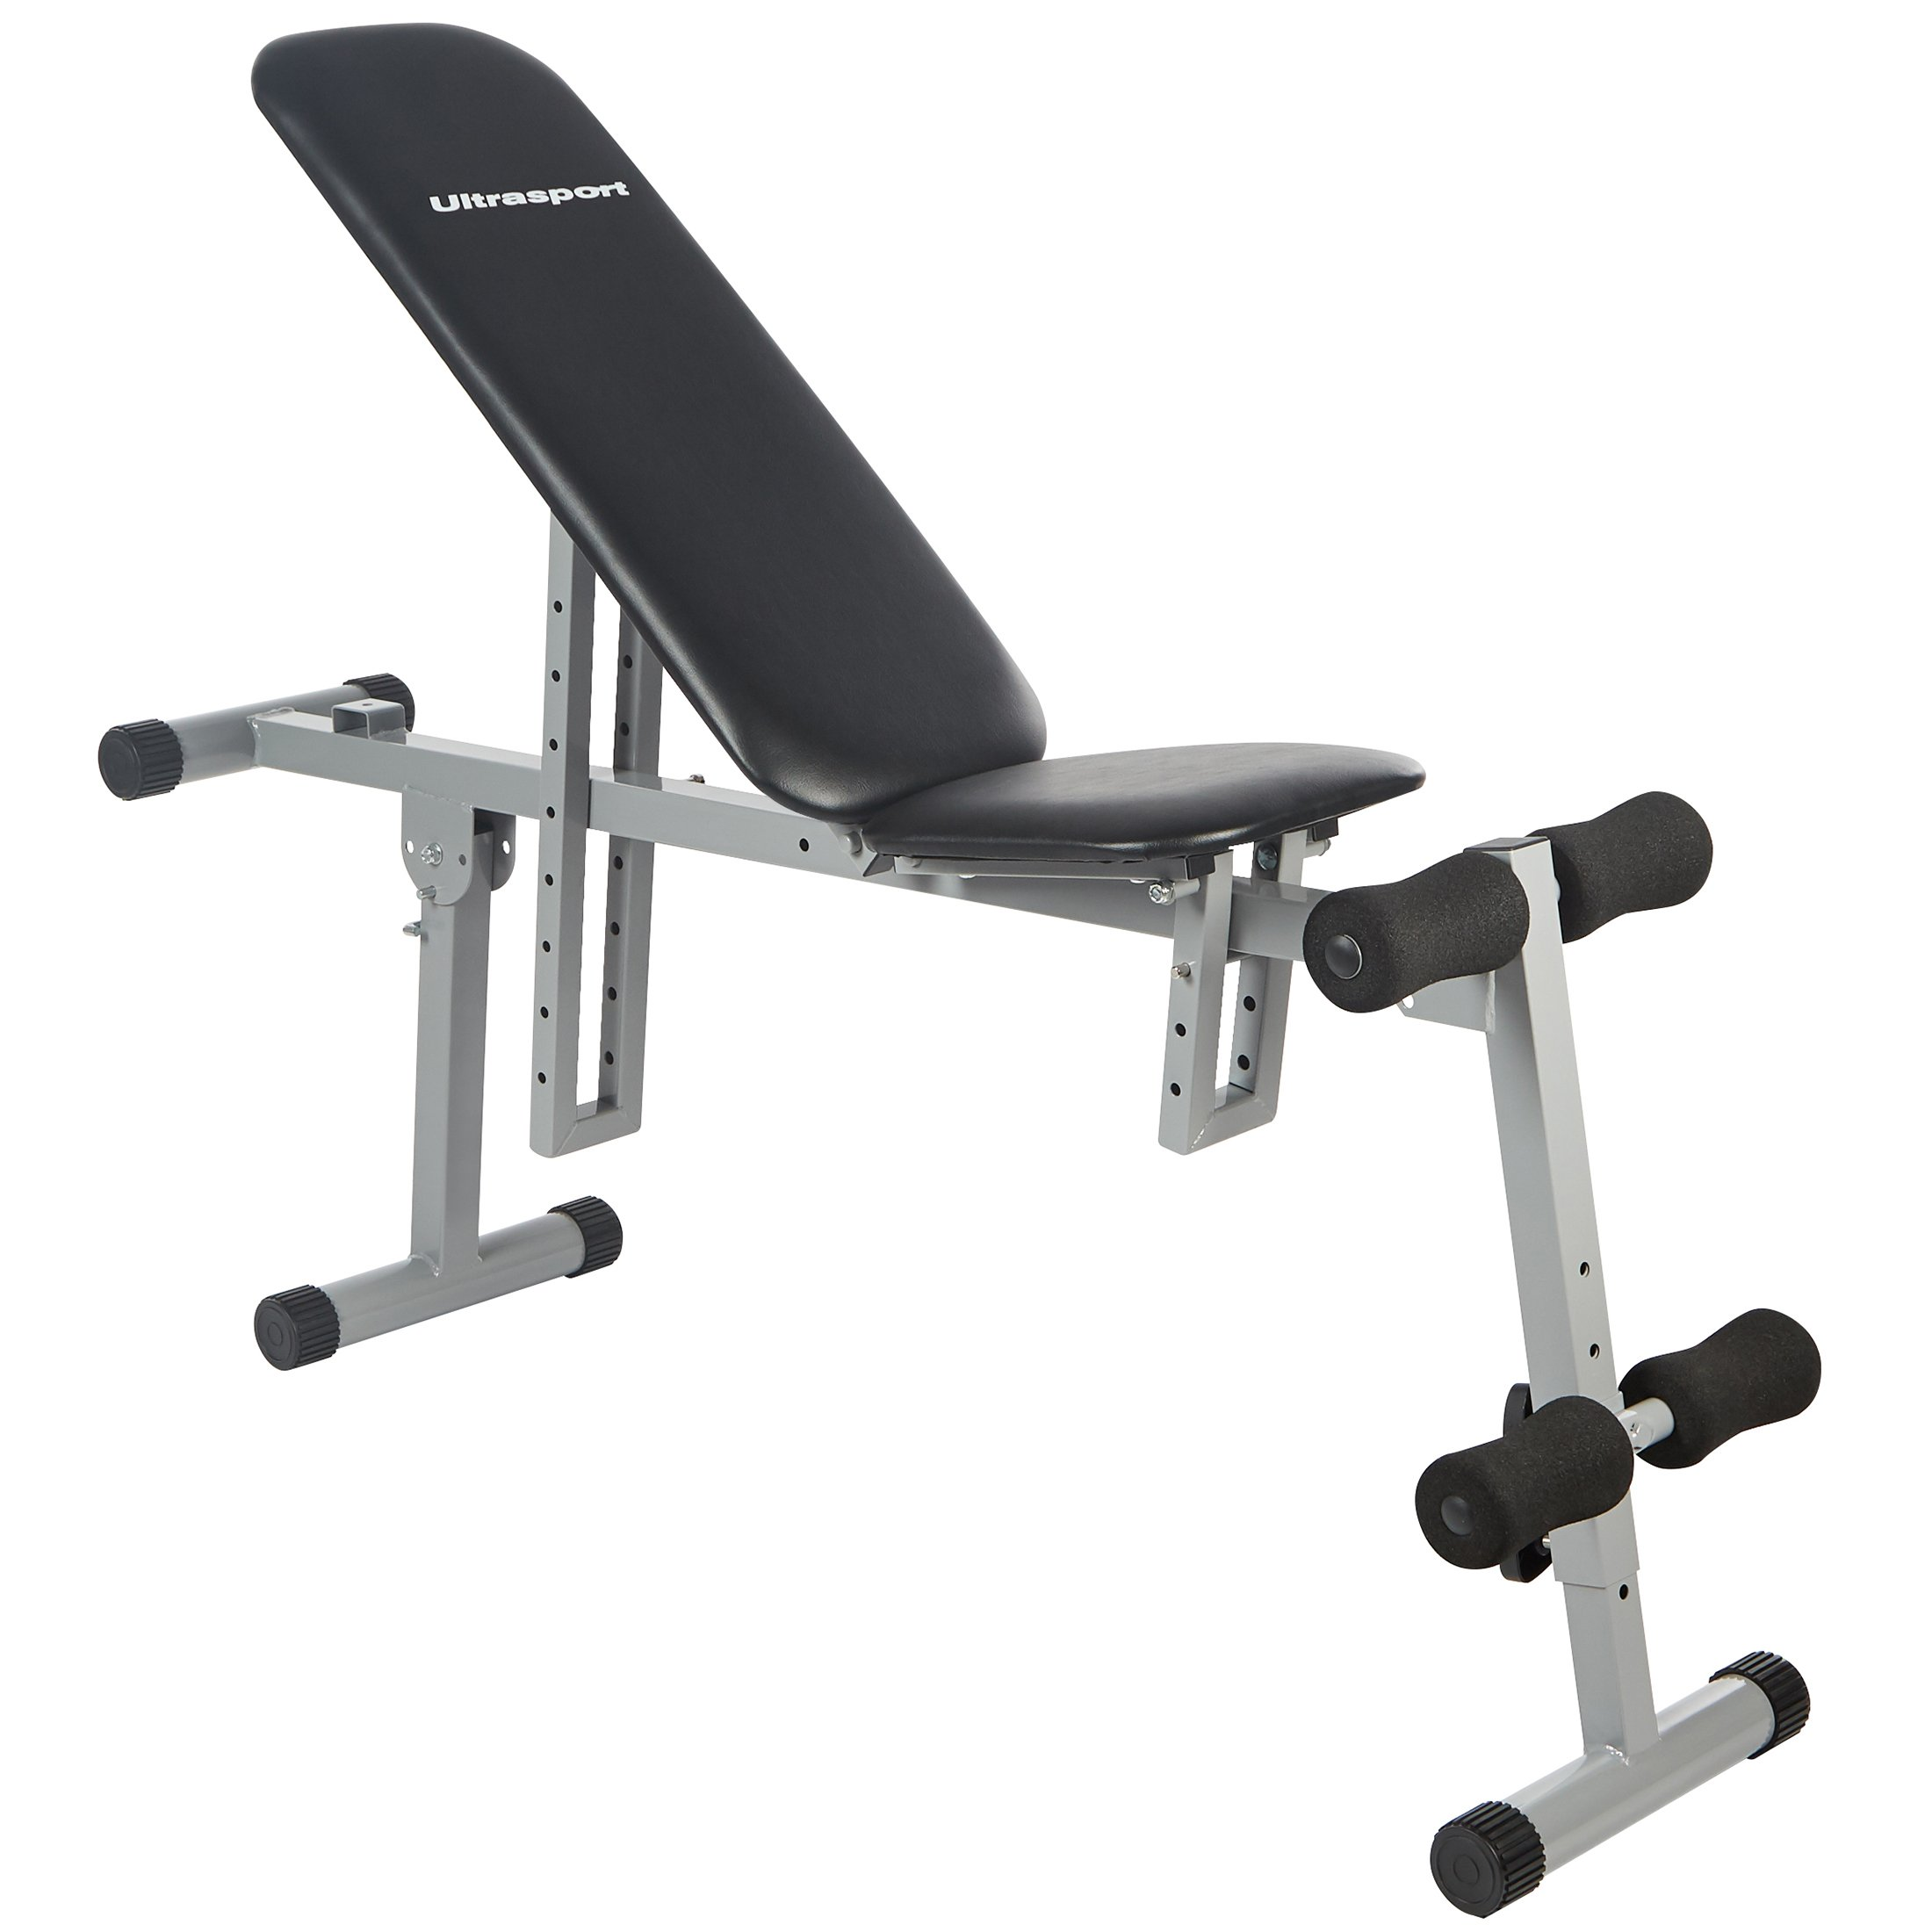 Ultrasport Banc De Musculation All In One Banc Dentraînement